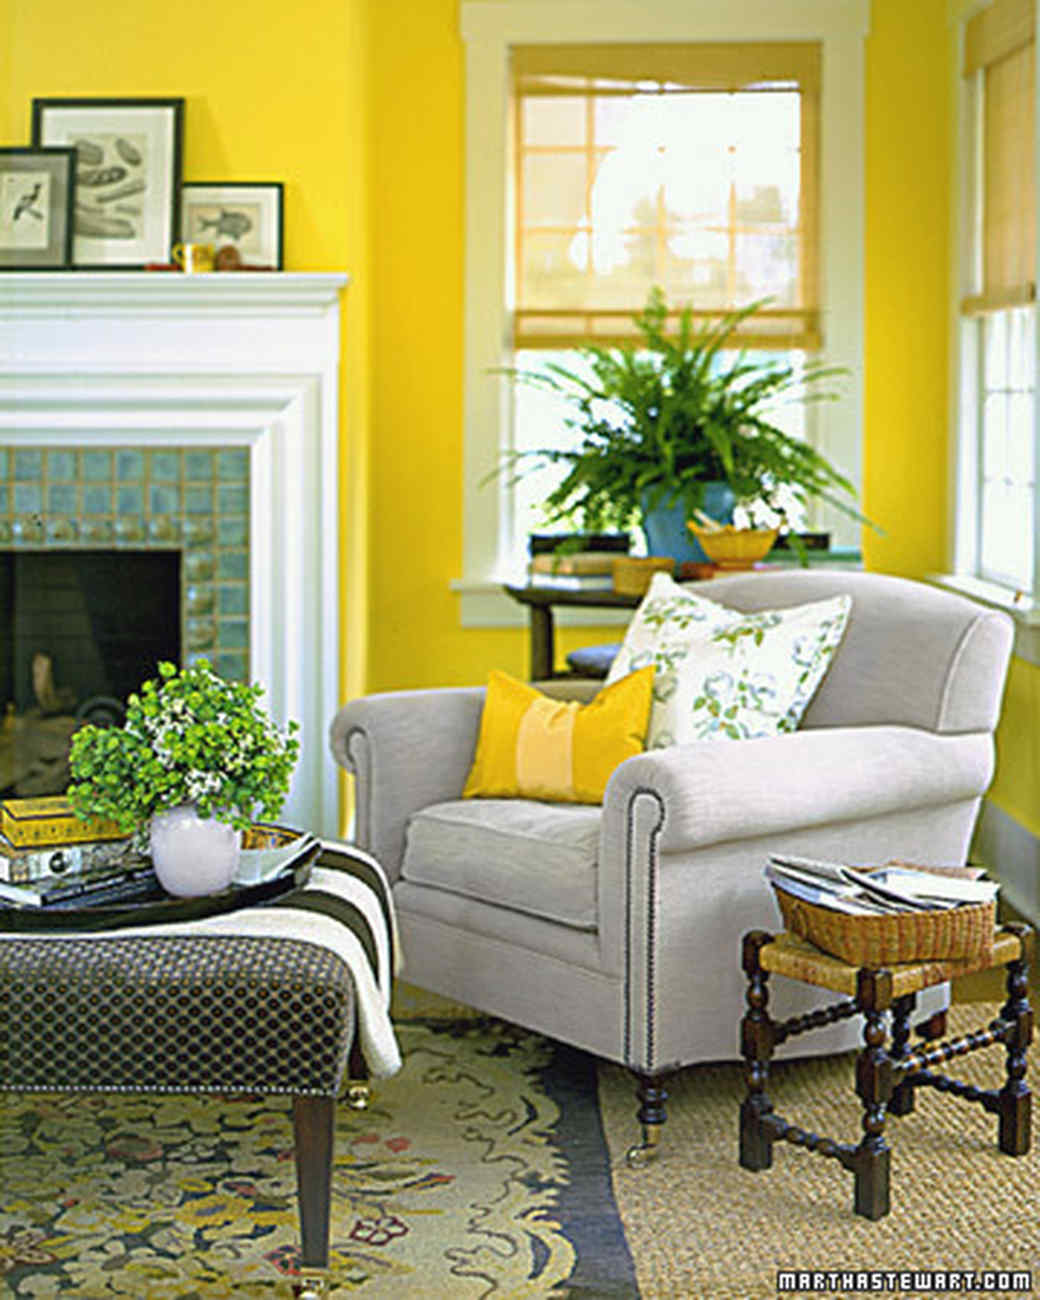 20 Best Decorating Good To Know Images On Pinterest: Martha Stewart